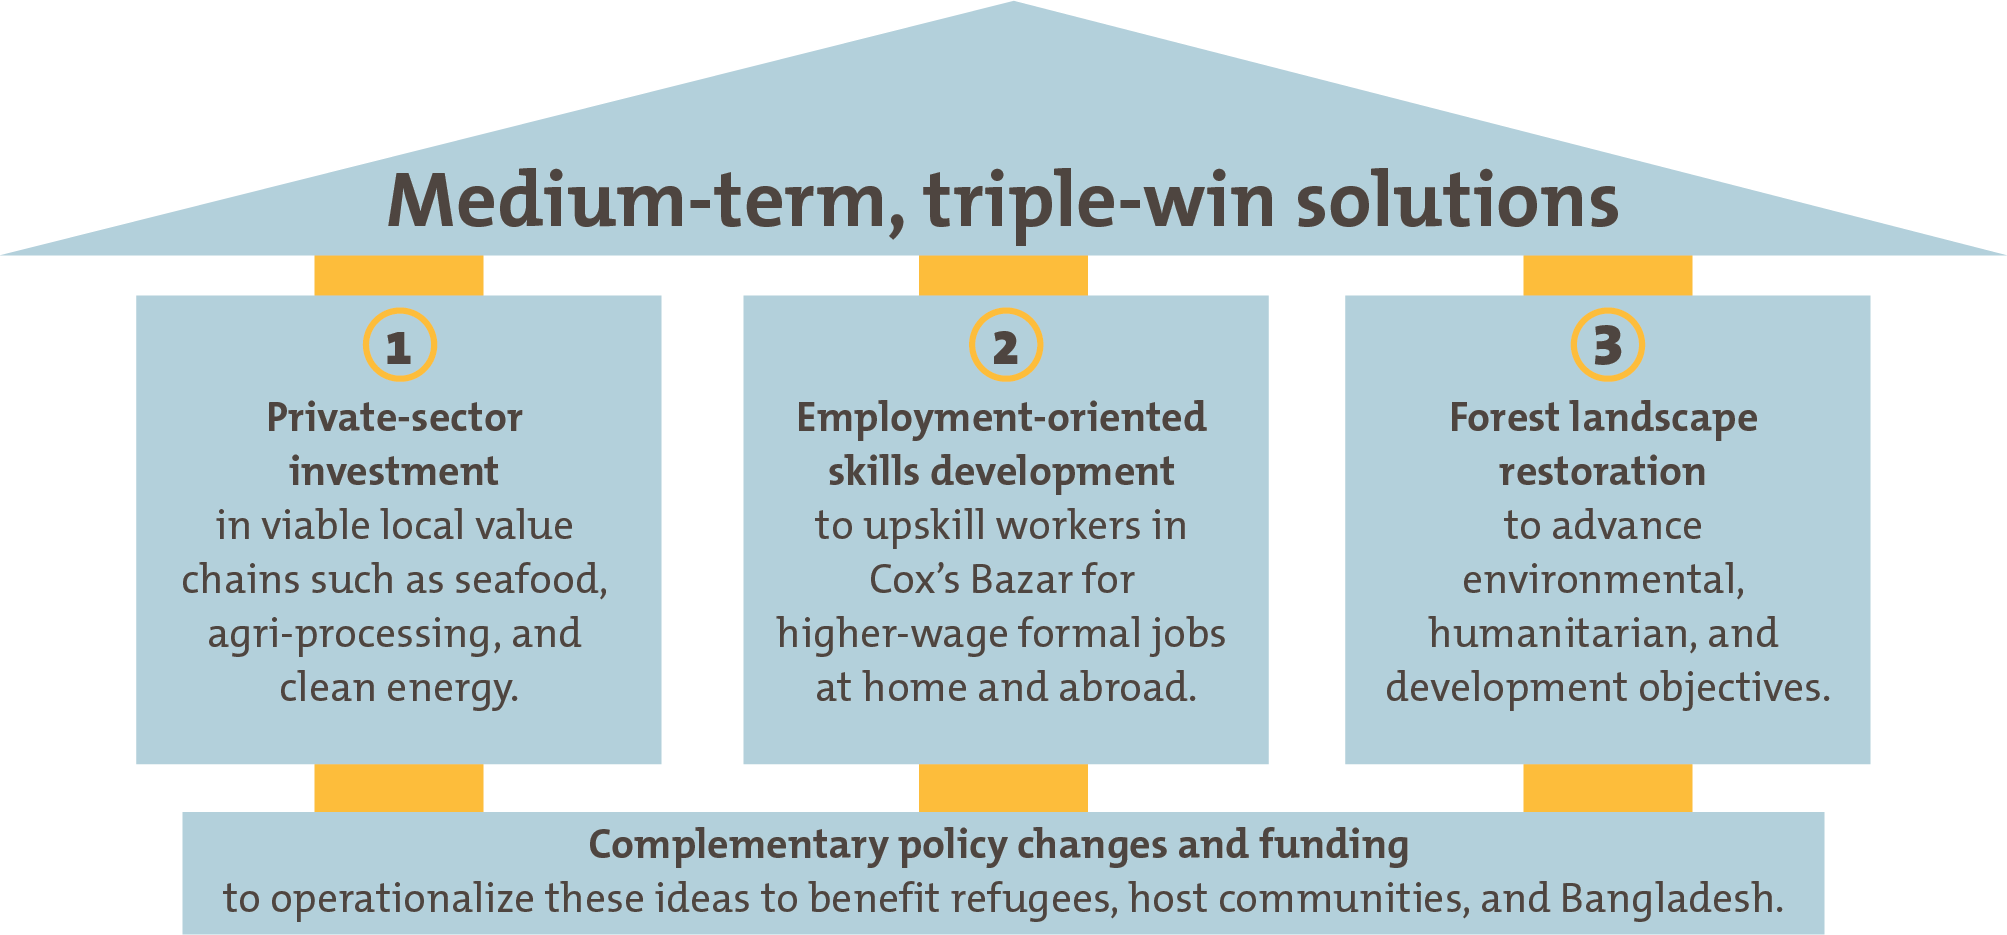 An image showing medium-term, triple-win solutions for the Rohingya crisis in Bangladesh